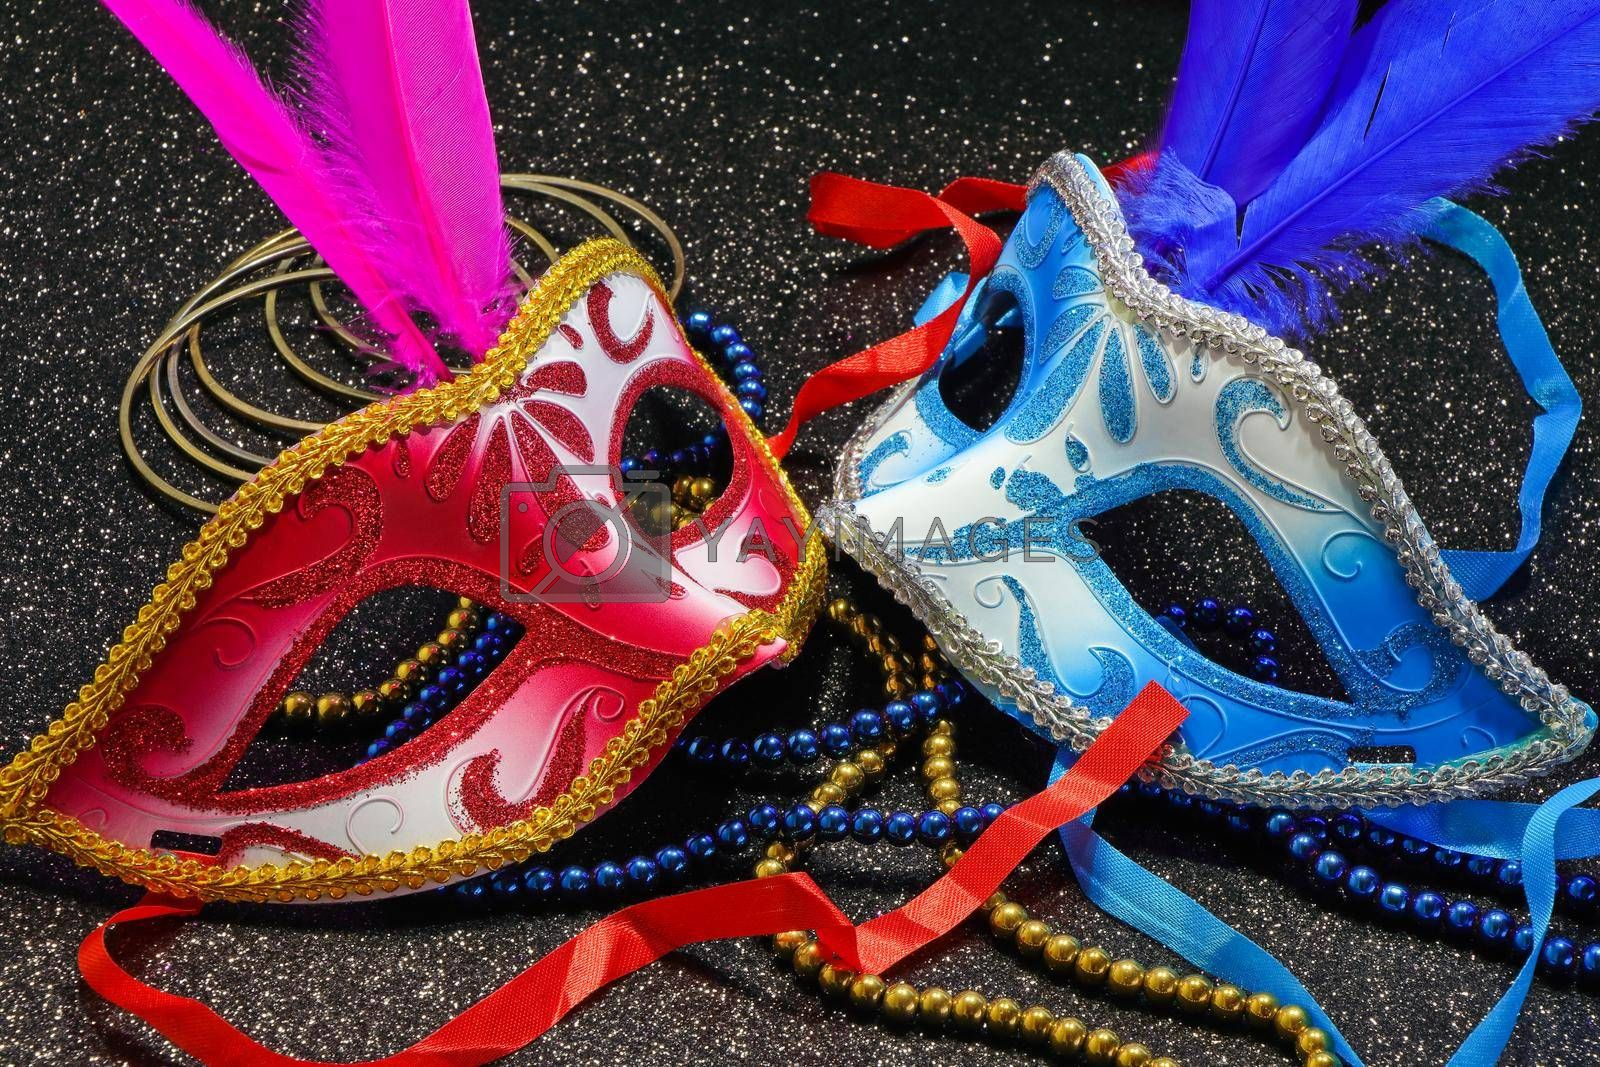 Mardi Gras carnival theme parade face masks with feathers and jewelry on textured black